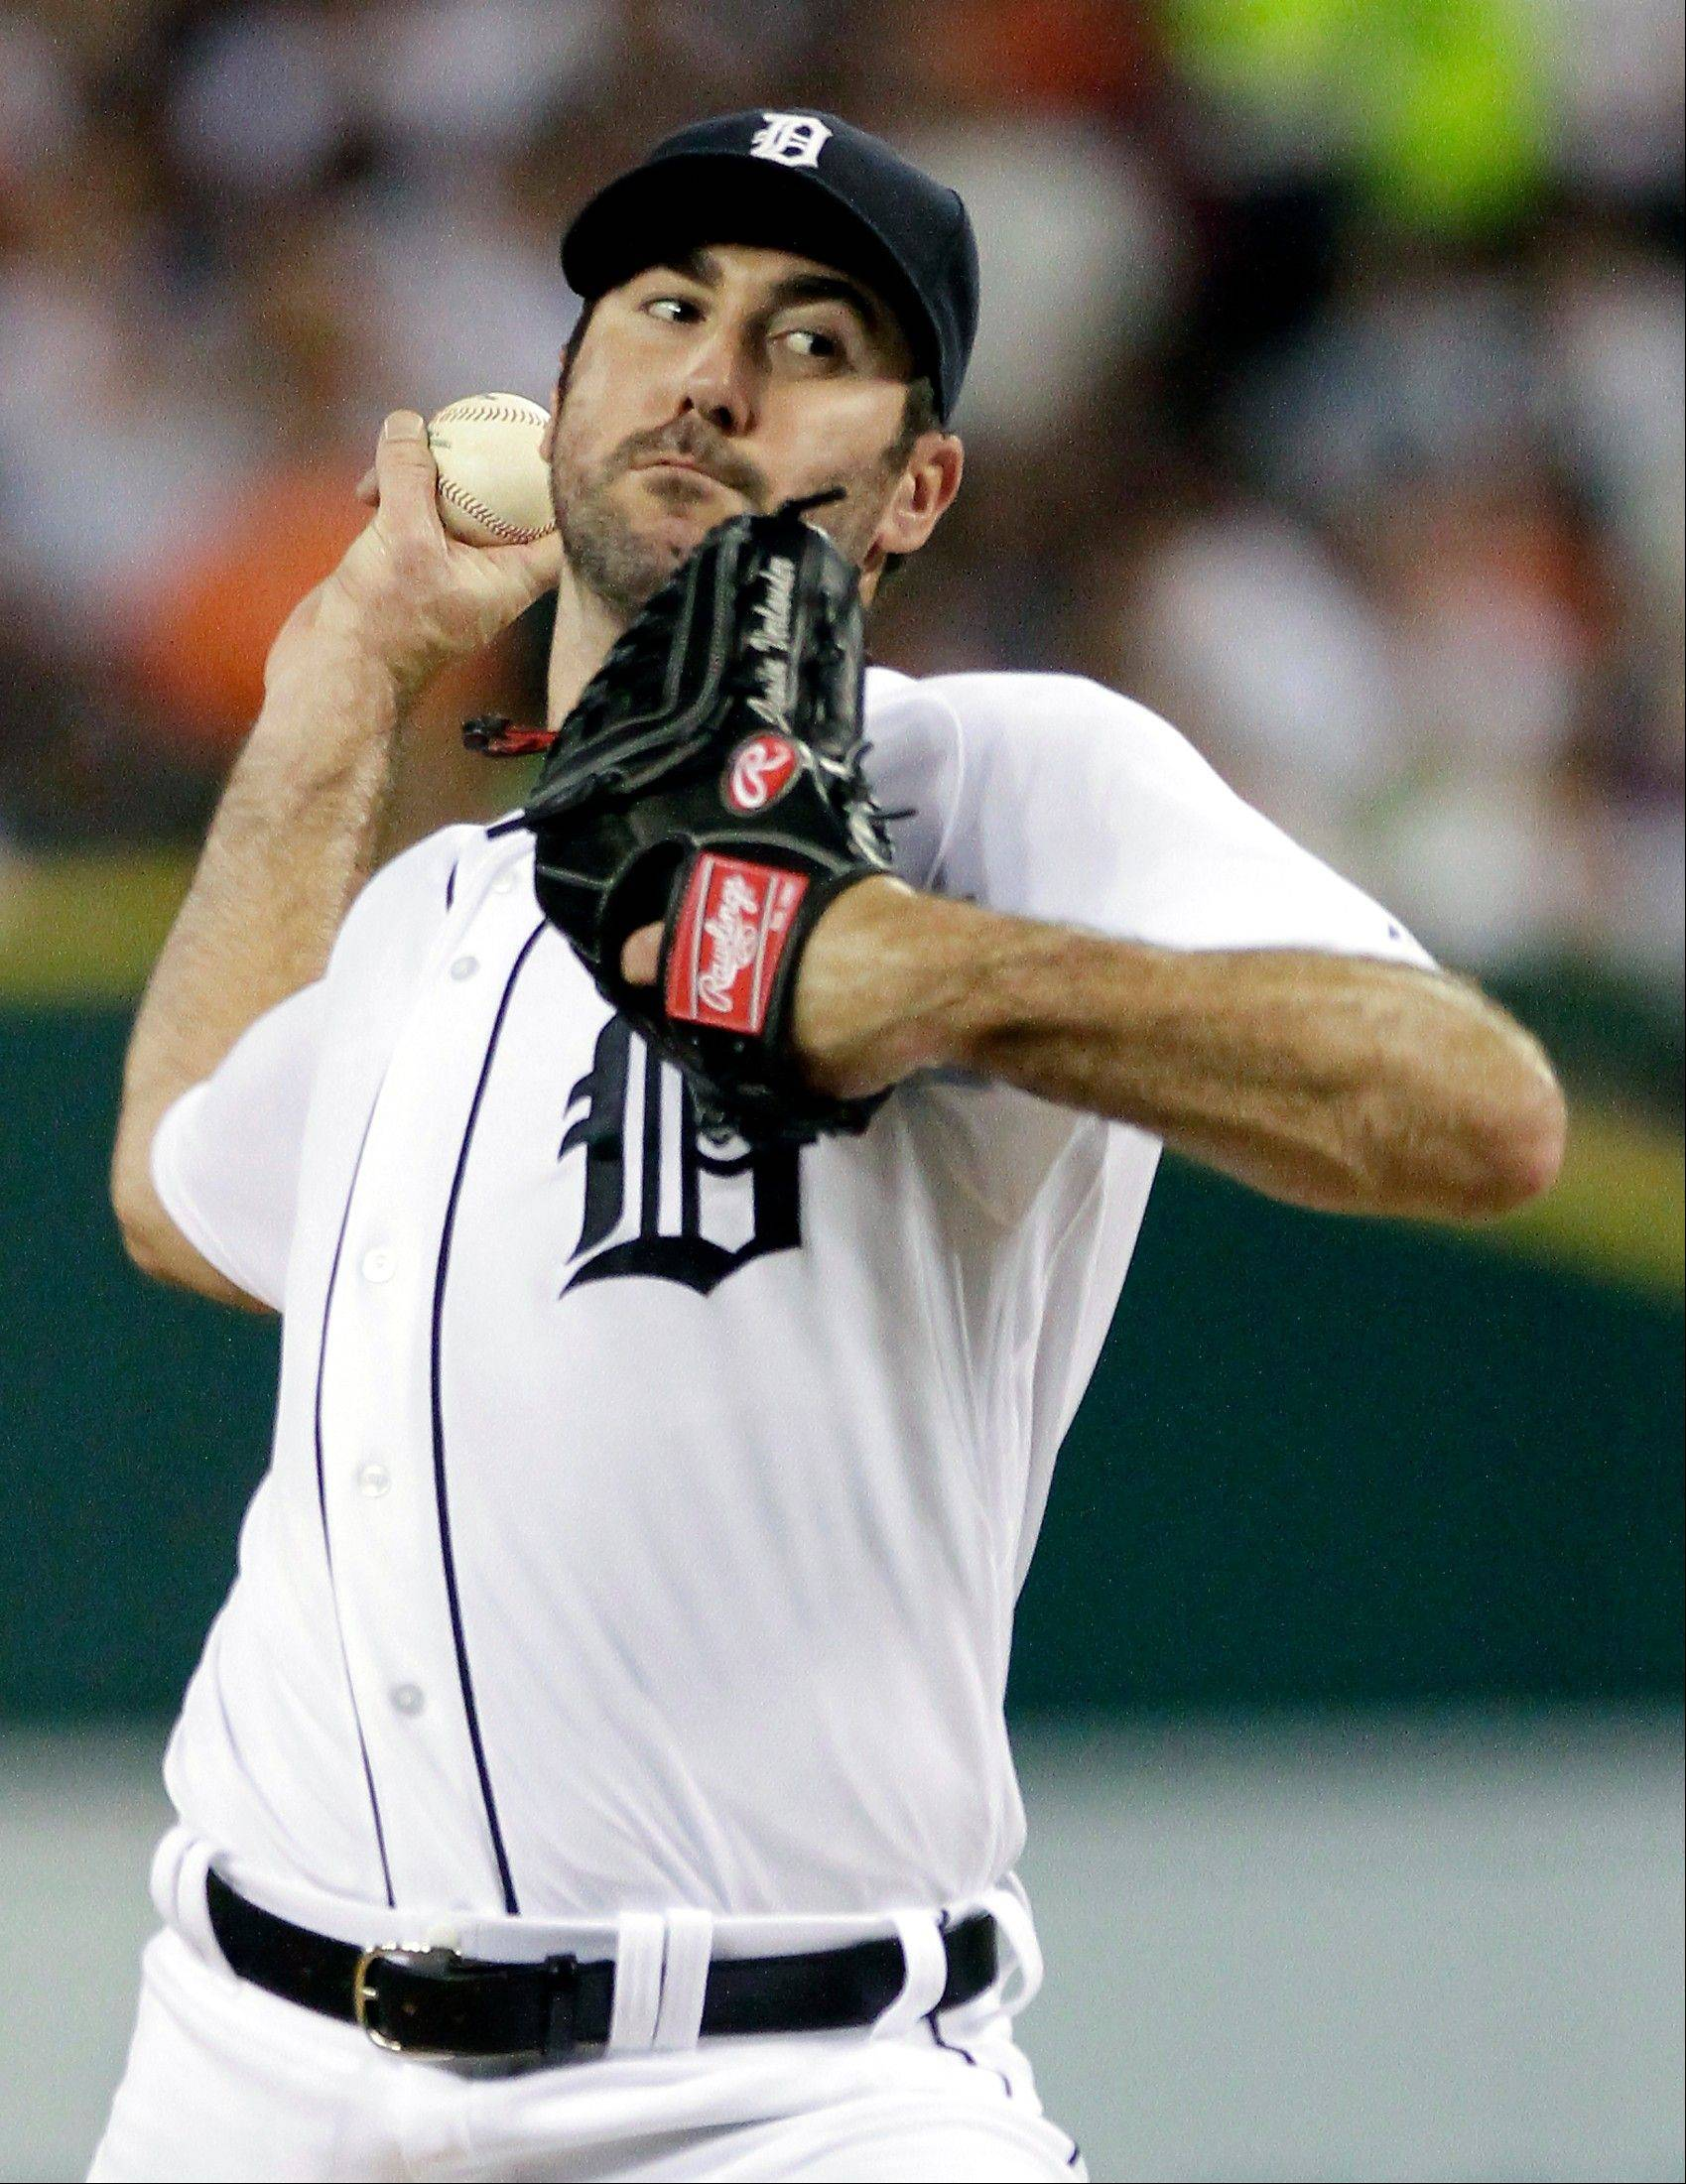 Starter Justin Verlander and the Detroit Tigers are in town to face the White Sox. Verlander pitches Thursday night.